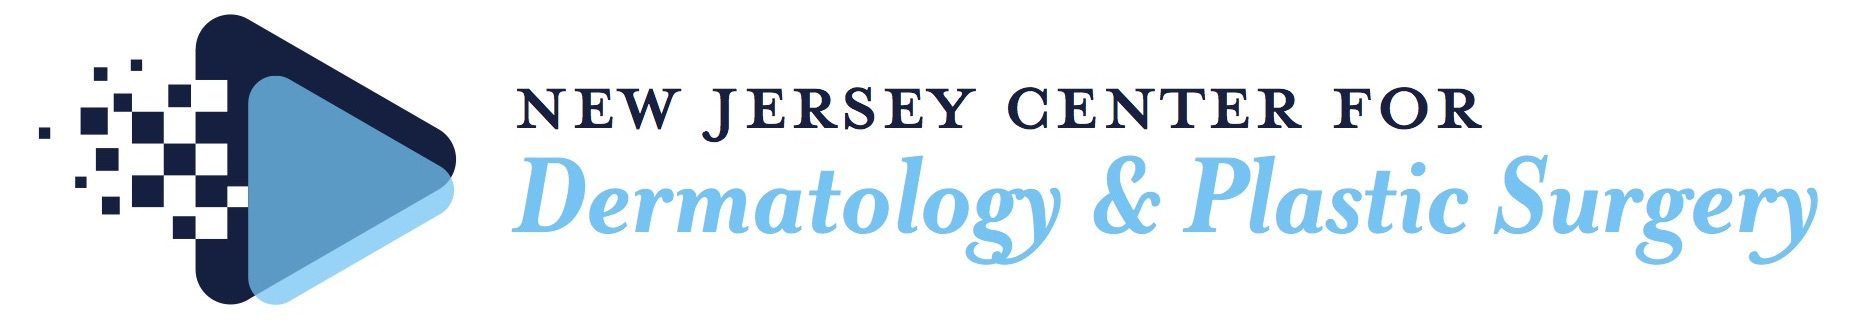 New Jersey Center for Dermatology and Plastic Surgery